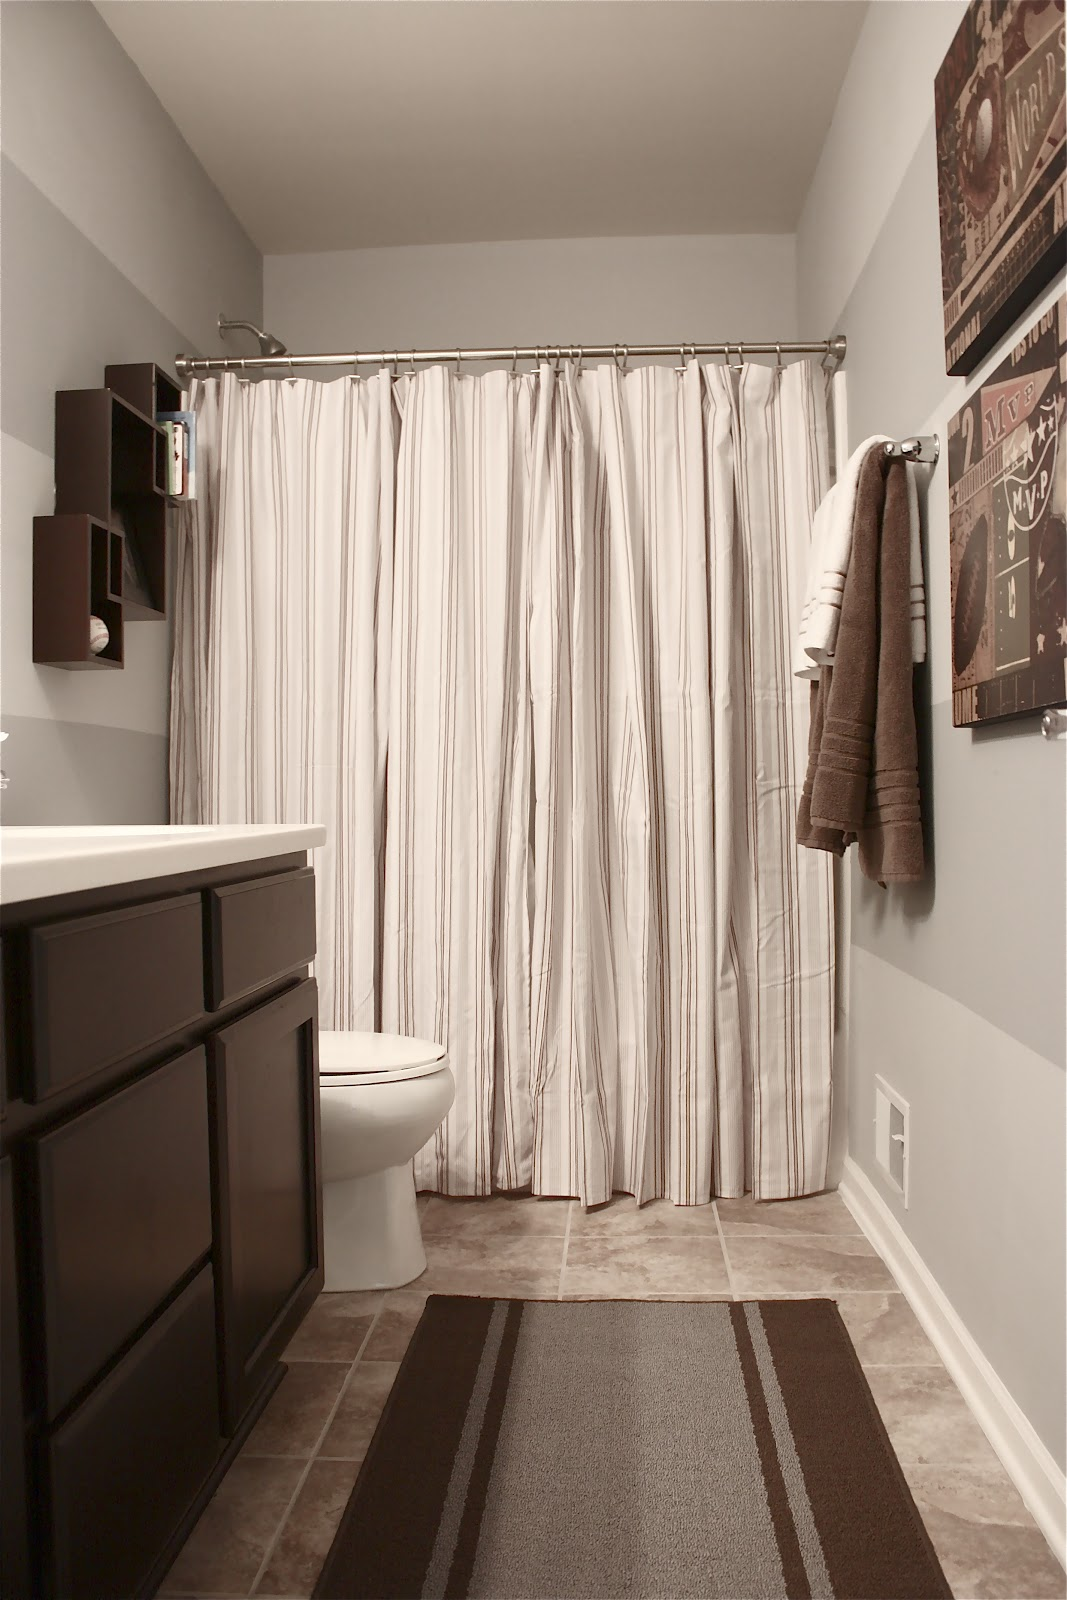 Bathroom window curtains short At Wayfair, we want to make sure you find the best home goods when you shop online. You have searched for bathroom window curtains short and this page displays the closest product matches we have for bathroom window curtains short to buy online.